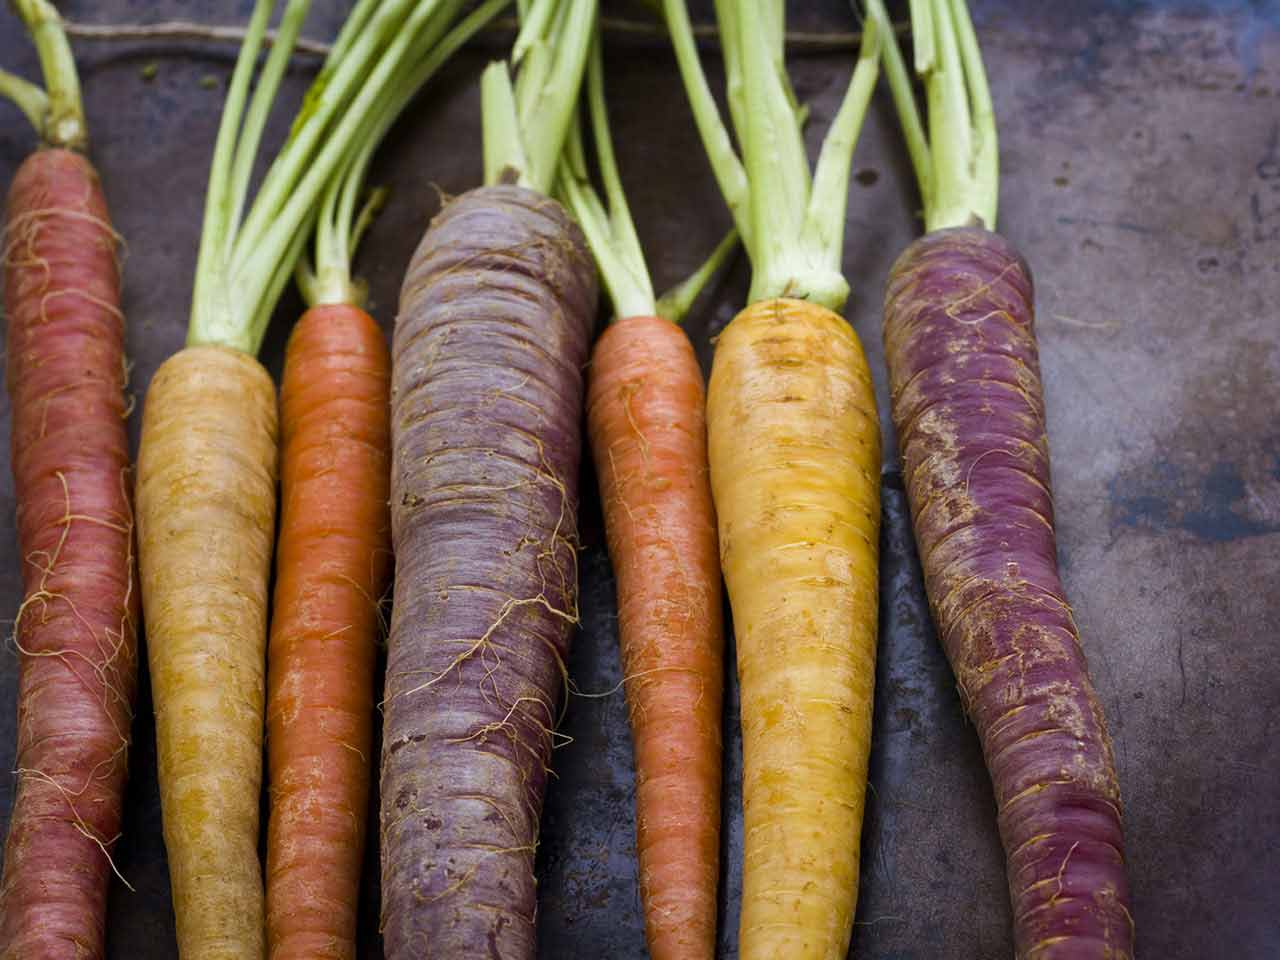 Different varities of carrot